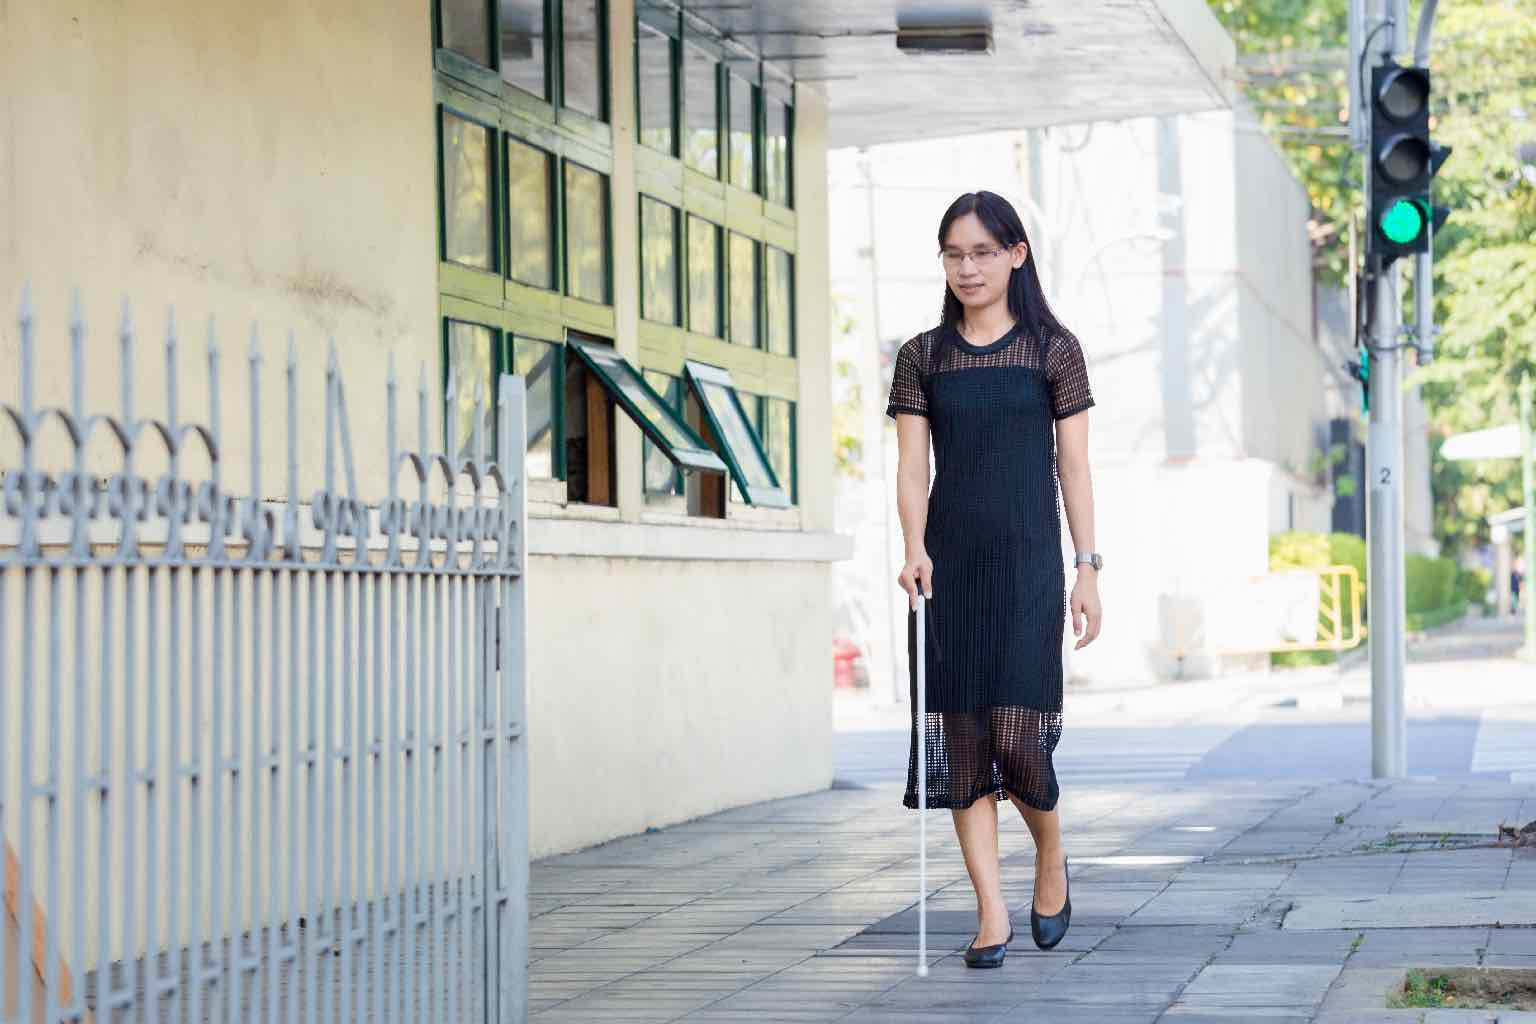 An Asian vision impaired woman walking along the street with a stick.